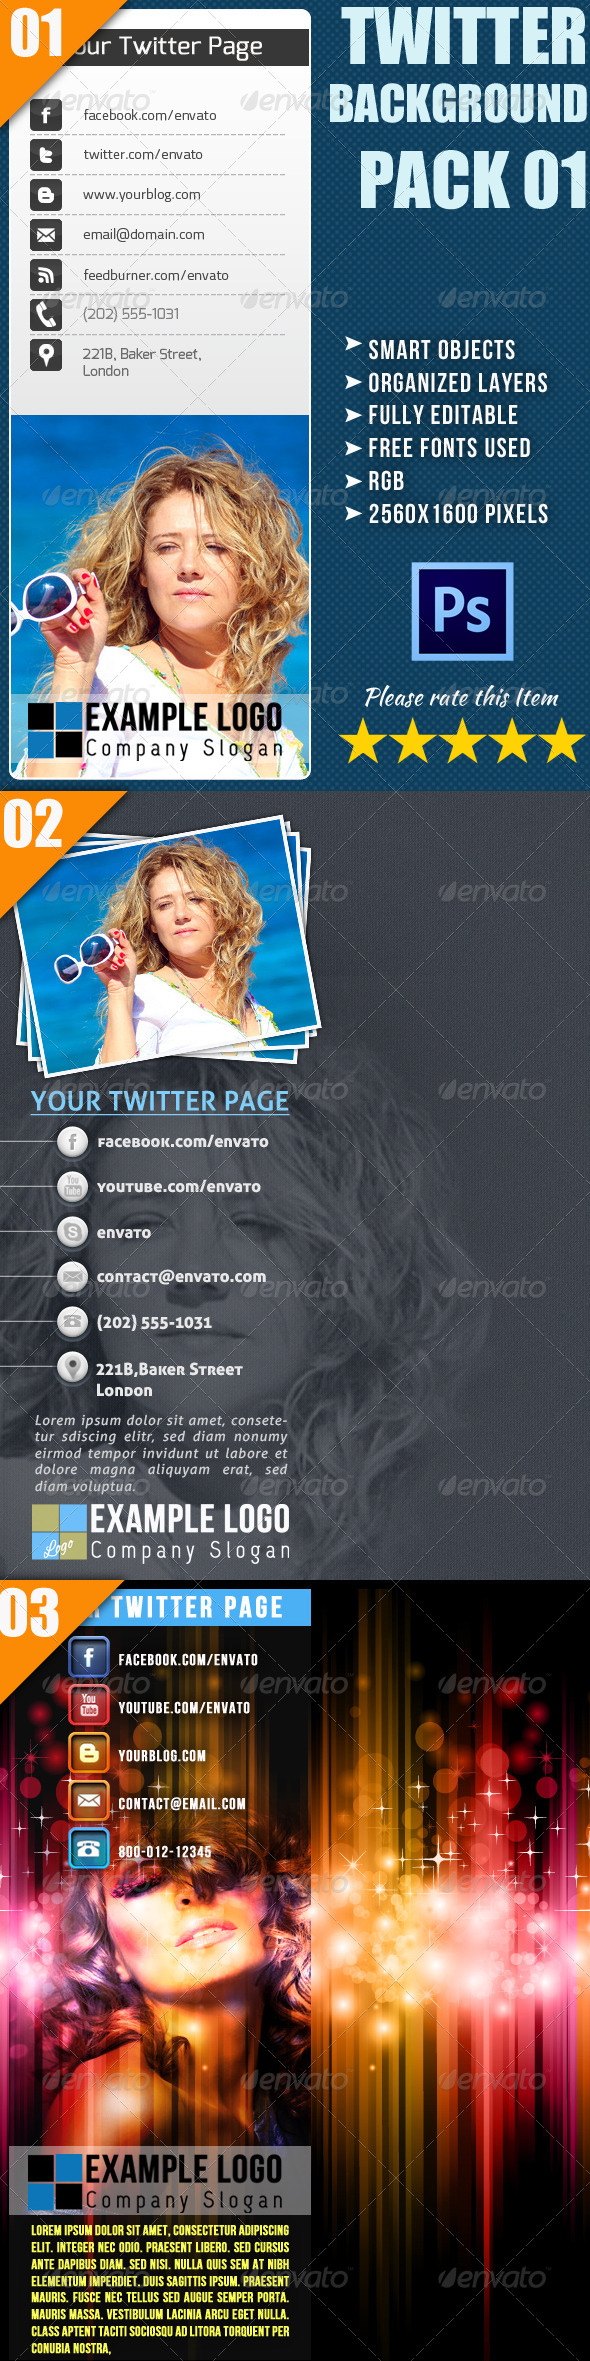 Twitter Background Bundle - Twitter Social Media